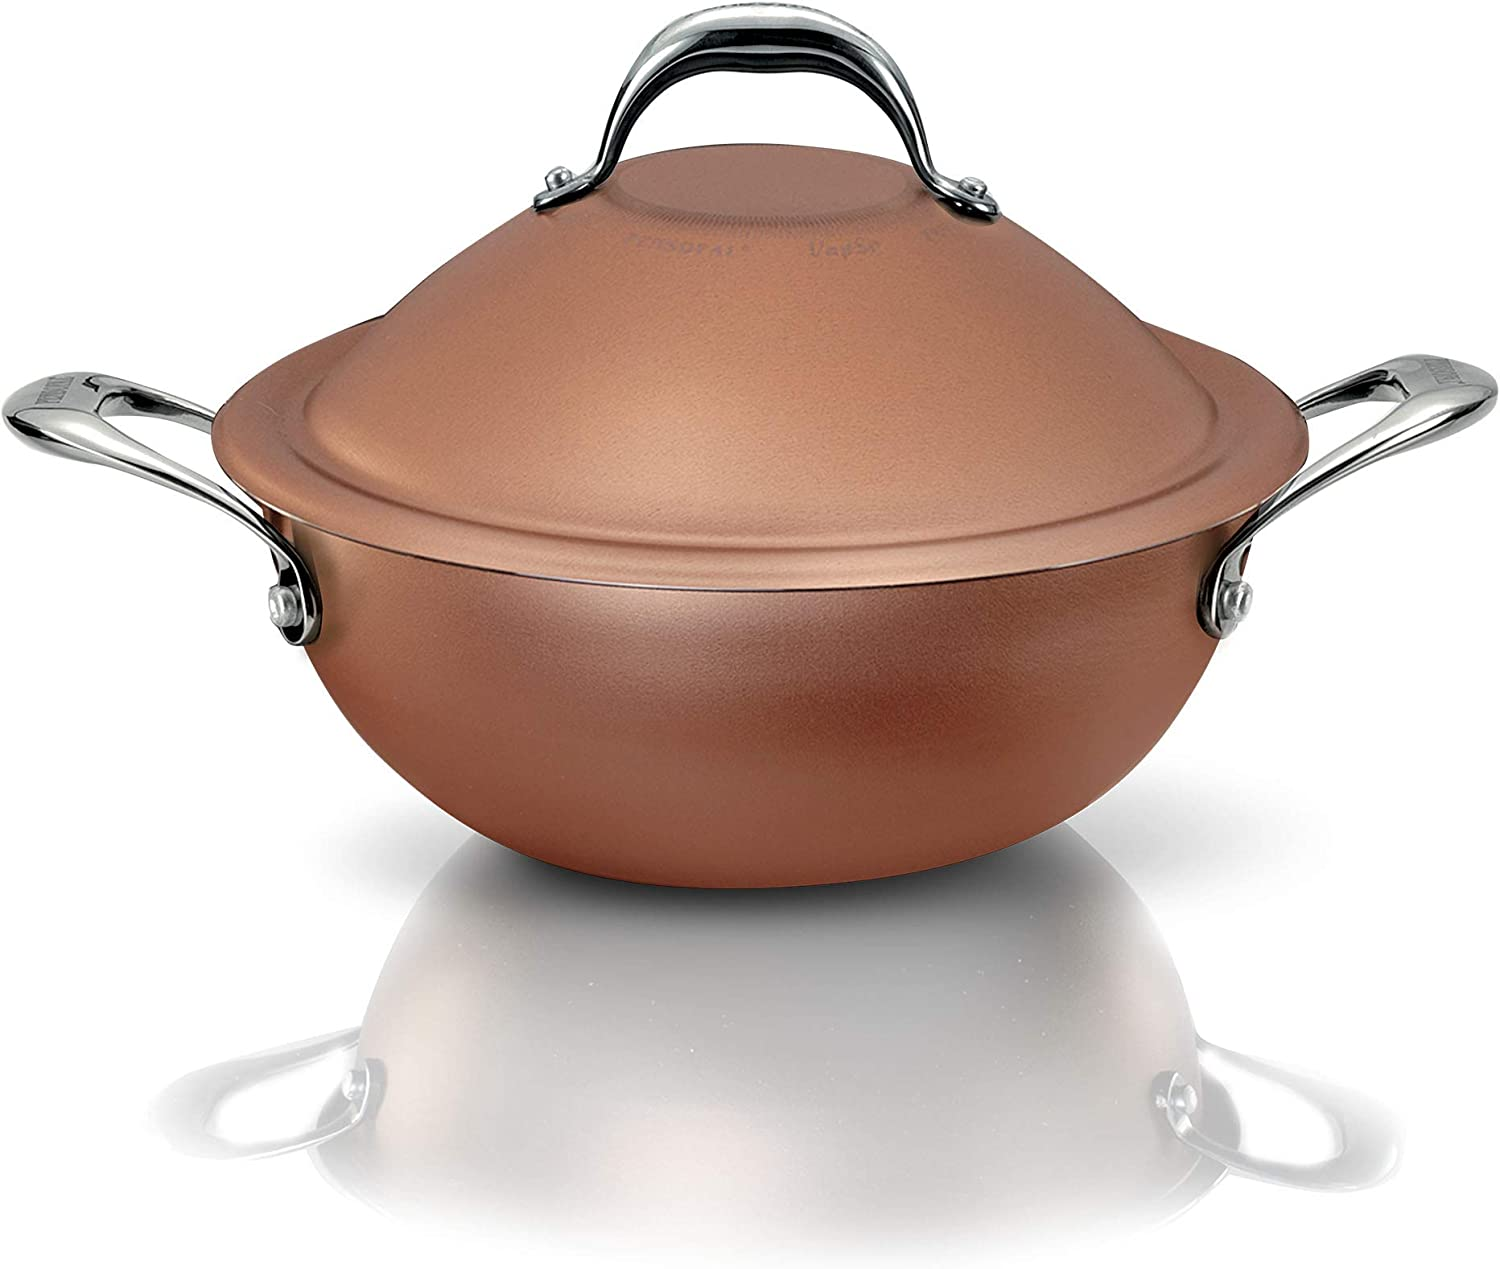 Pensofal PEN 6919 Non-Stick Eco-Friendly 9 Layer Professional Aluminum VapSi Wok With Patented Diamond Professional Coating For All Cook Tops Including Induction, 24 cm / 9.45 Inches